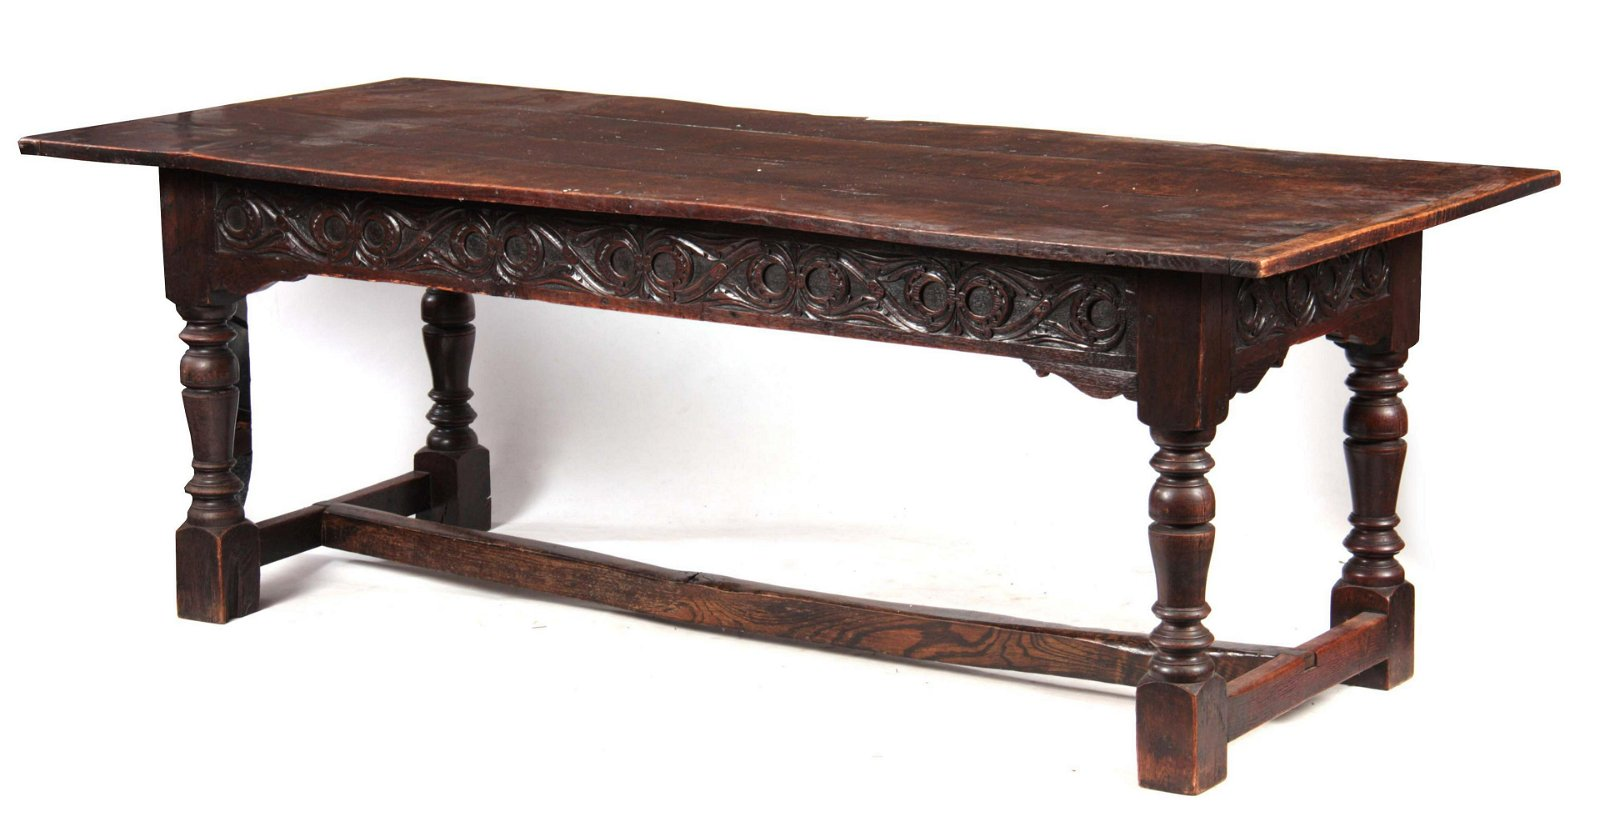 A 17TH CENTURY AND LATER OAK REFECTORY TABLE with